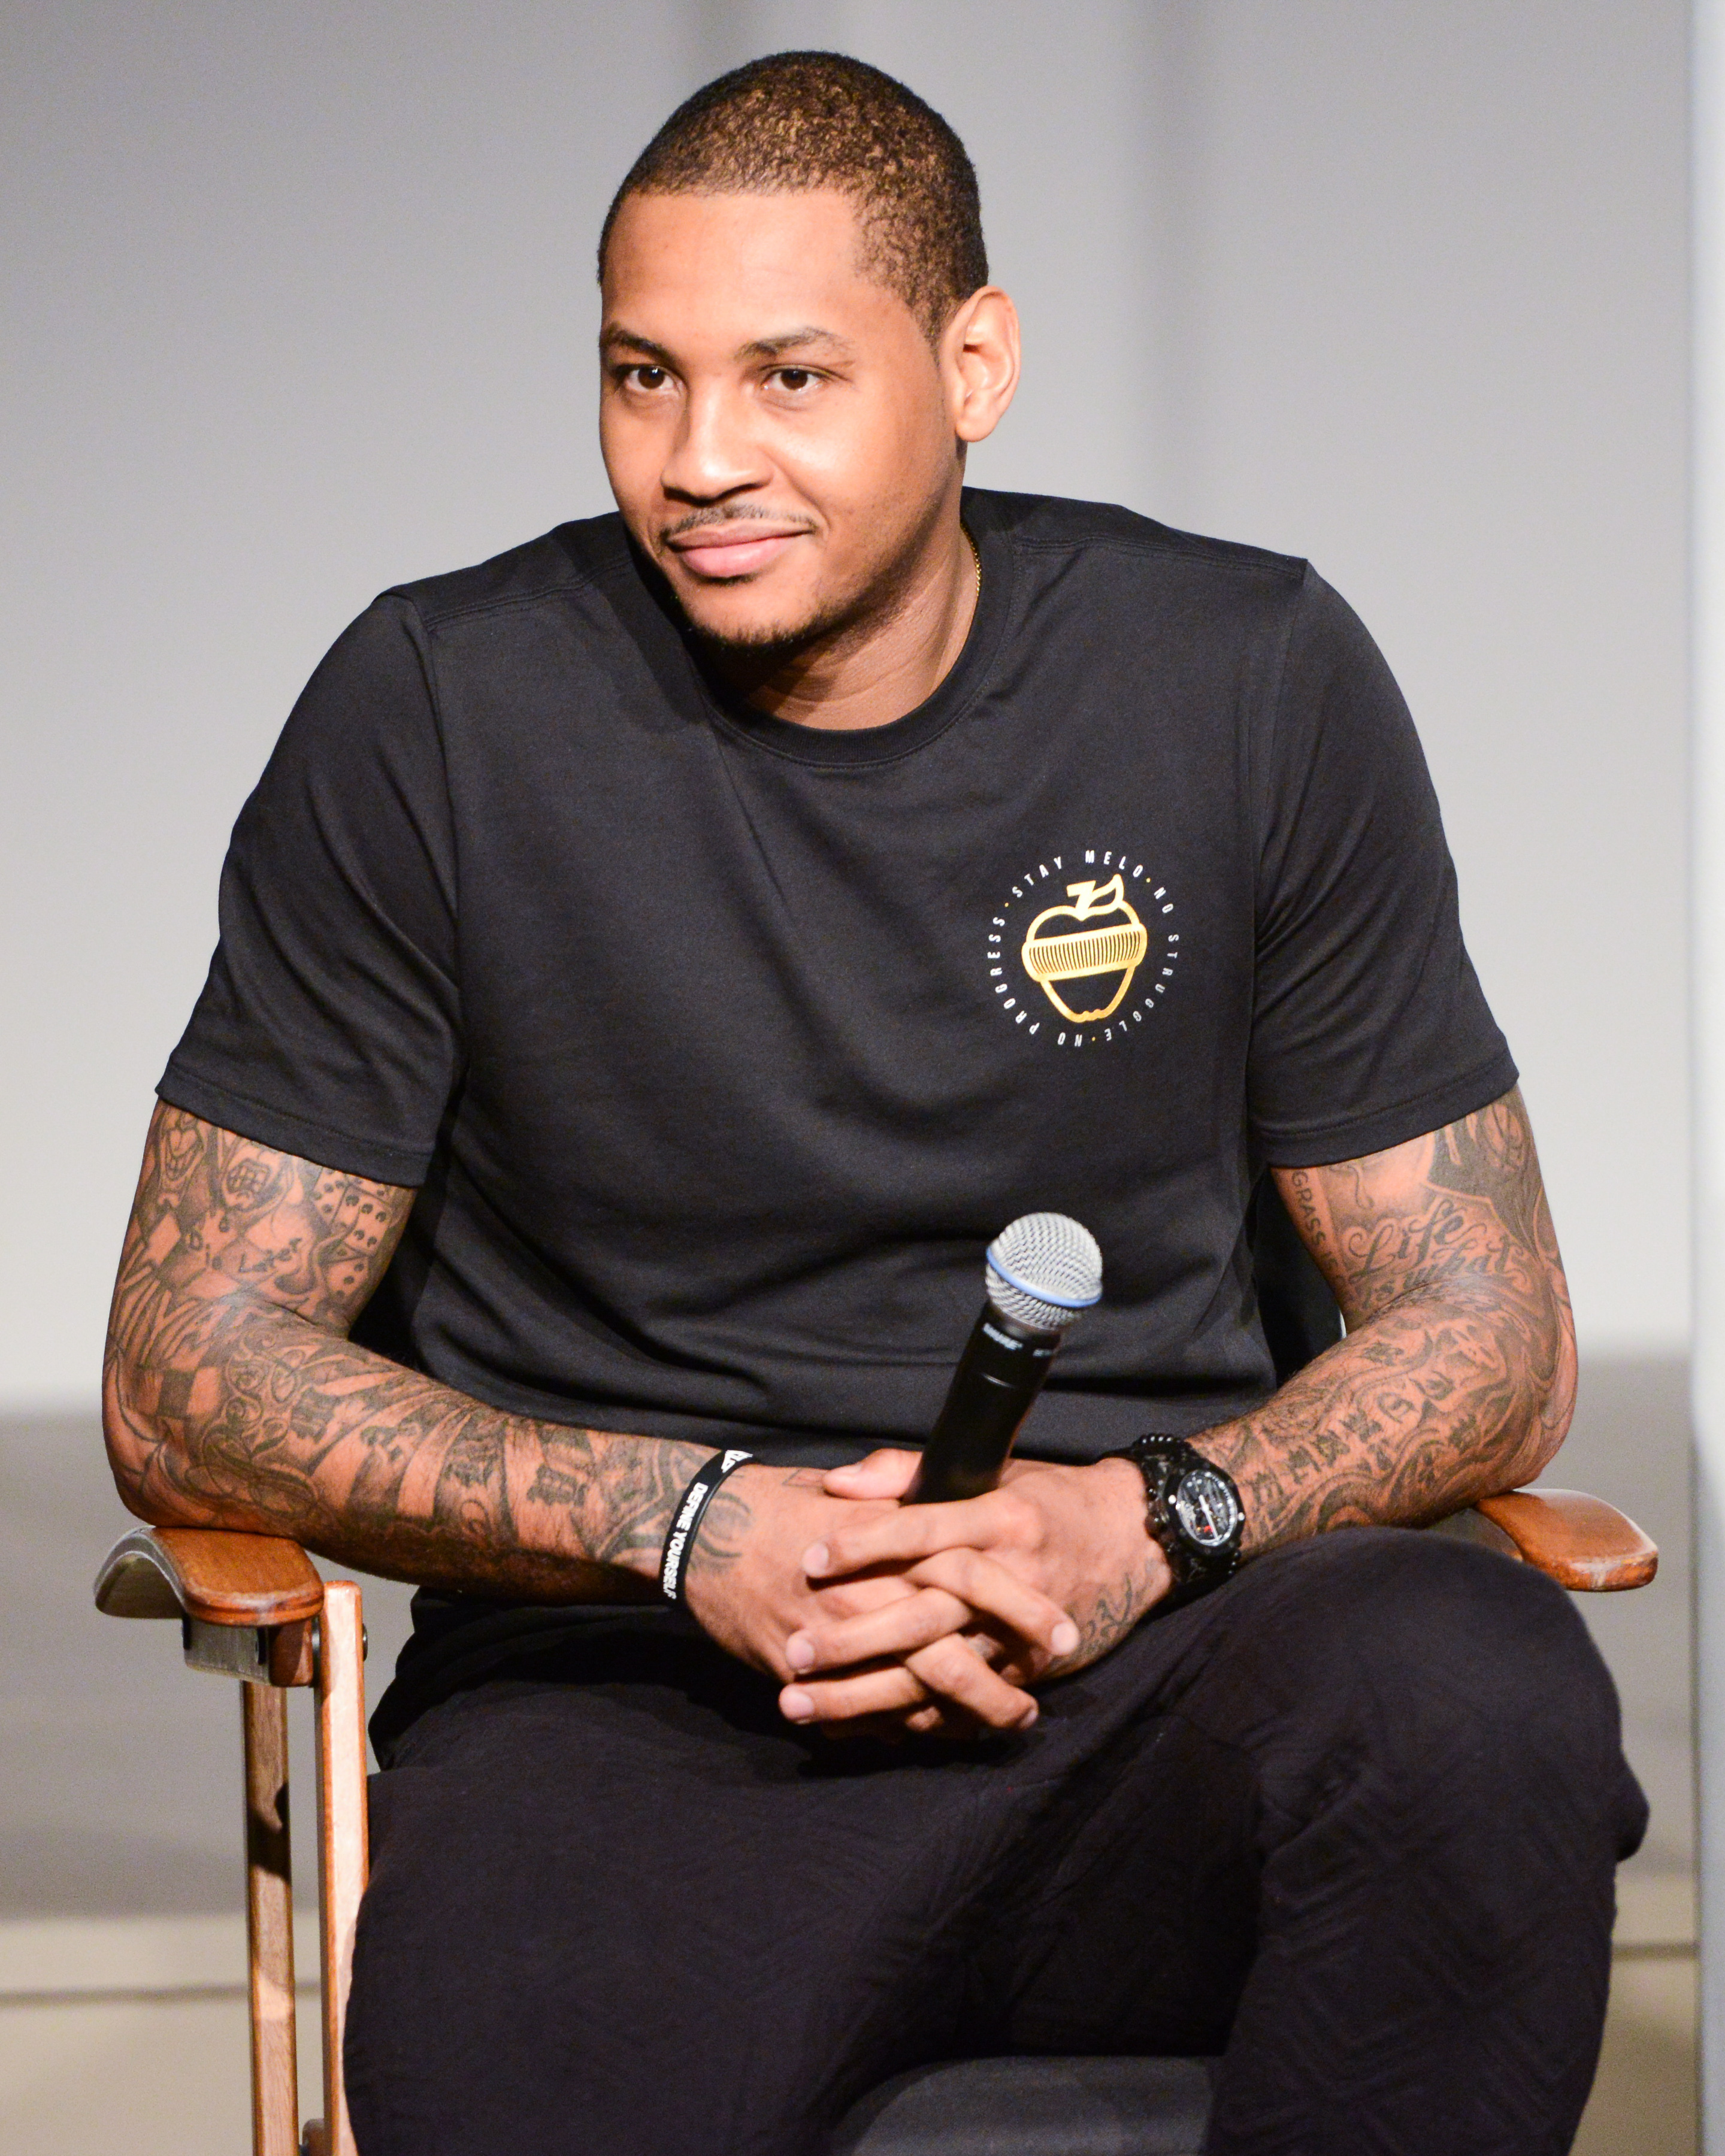 Carmelo Anthony at Made Fashion Week (Photo: Made FW).